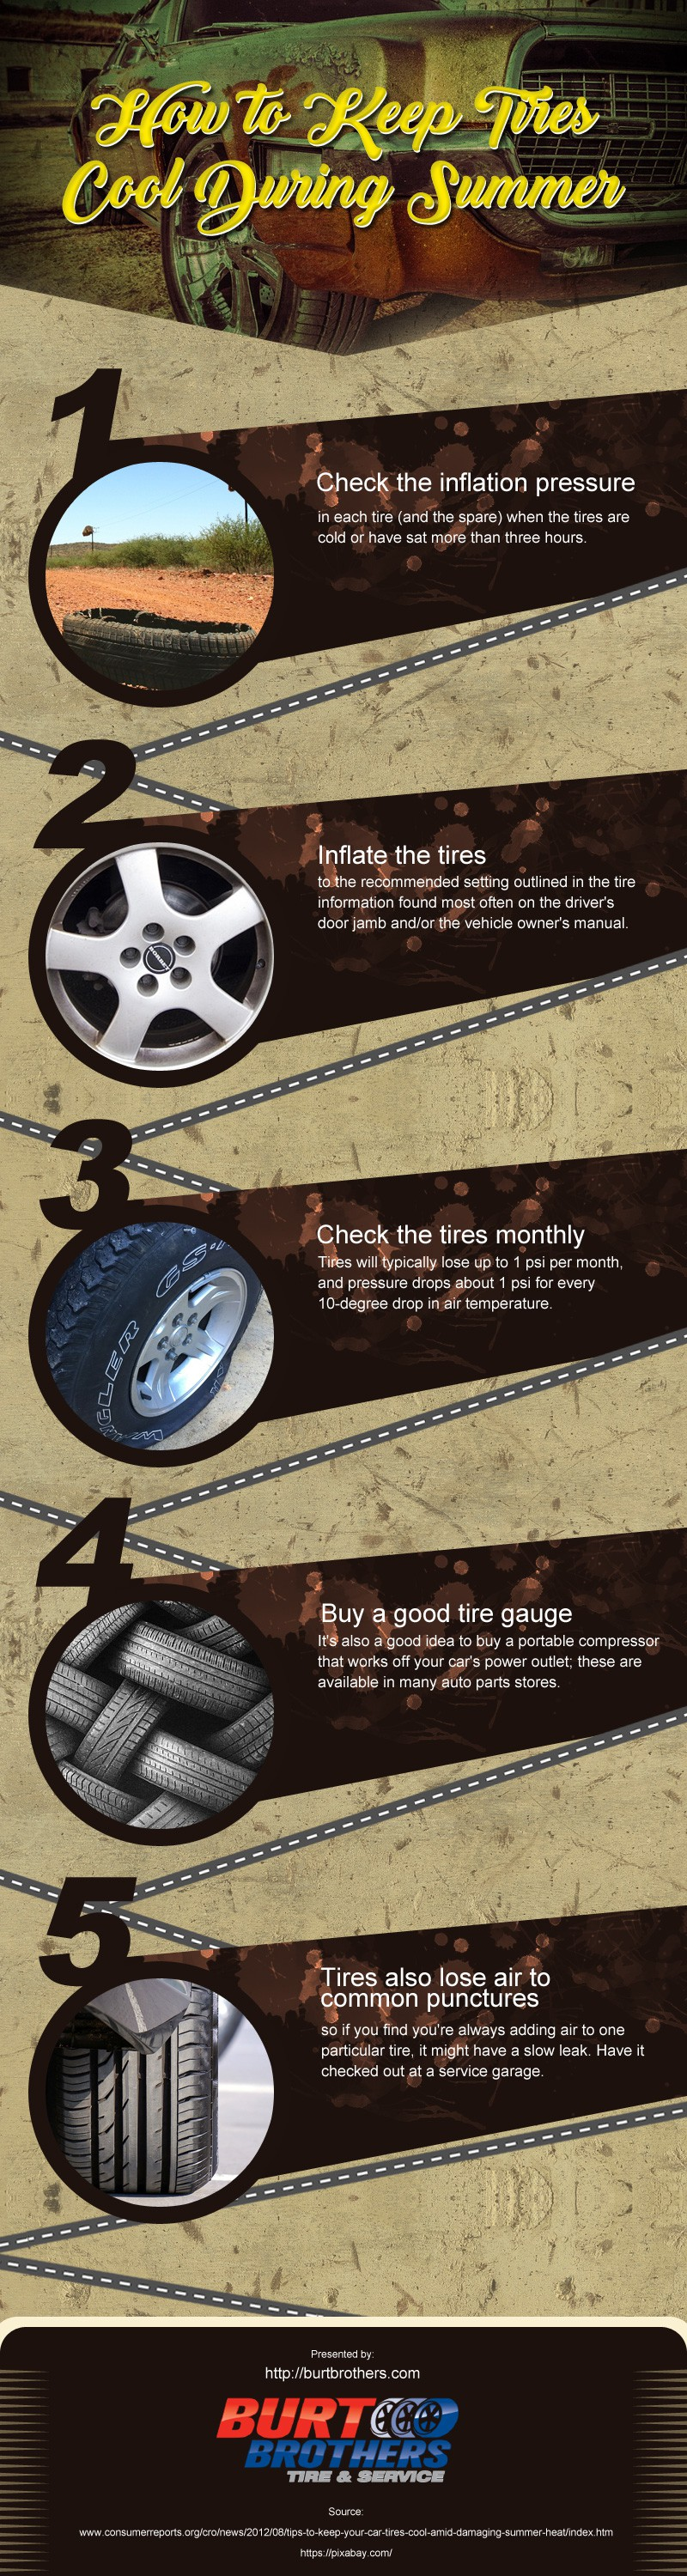 How to Keep Tires Cool During Summer